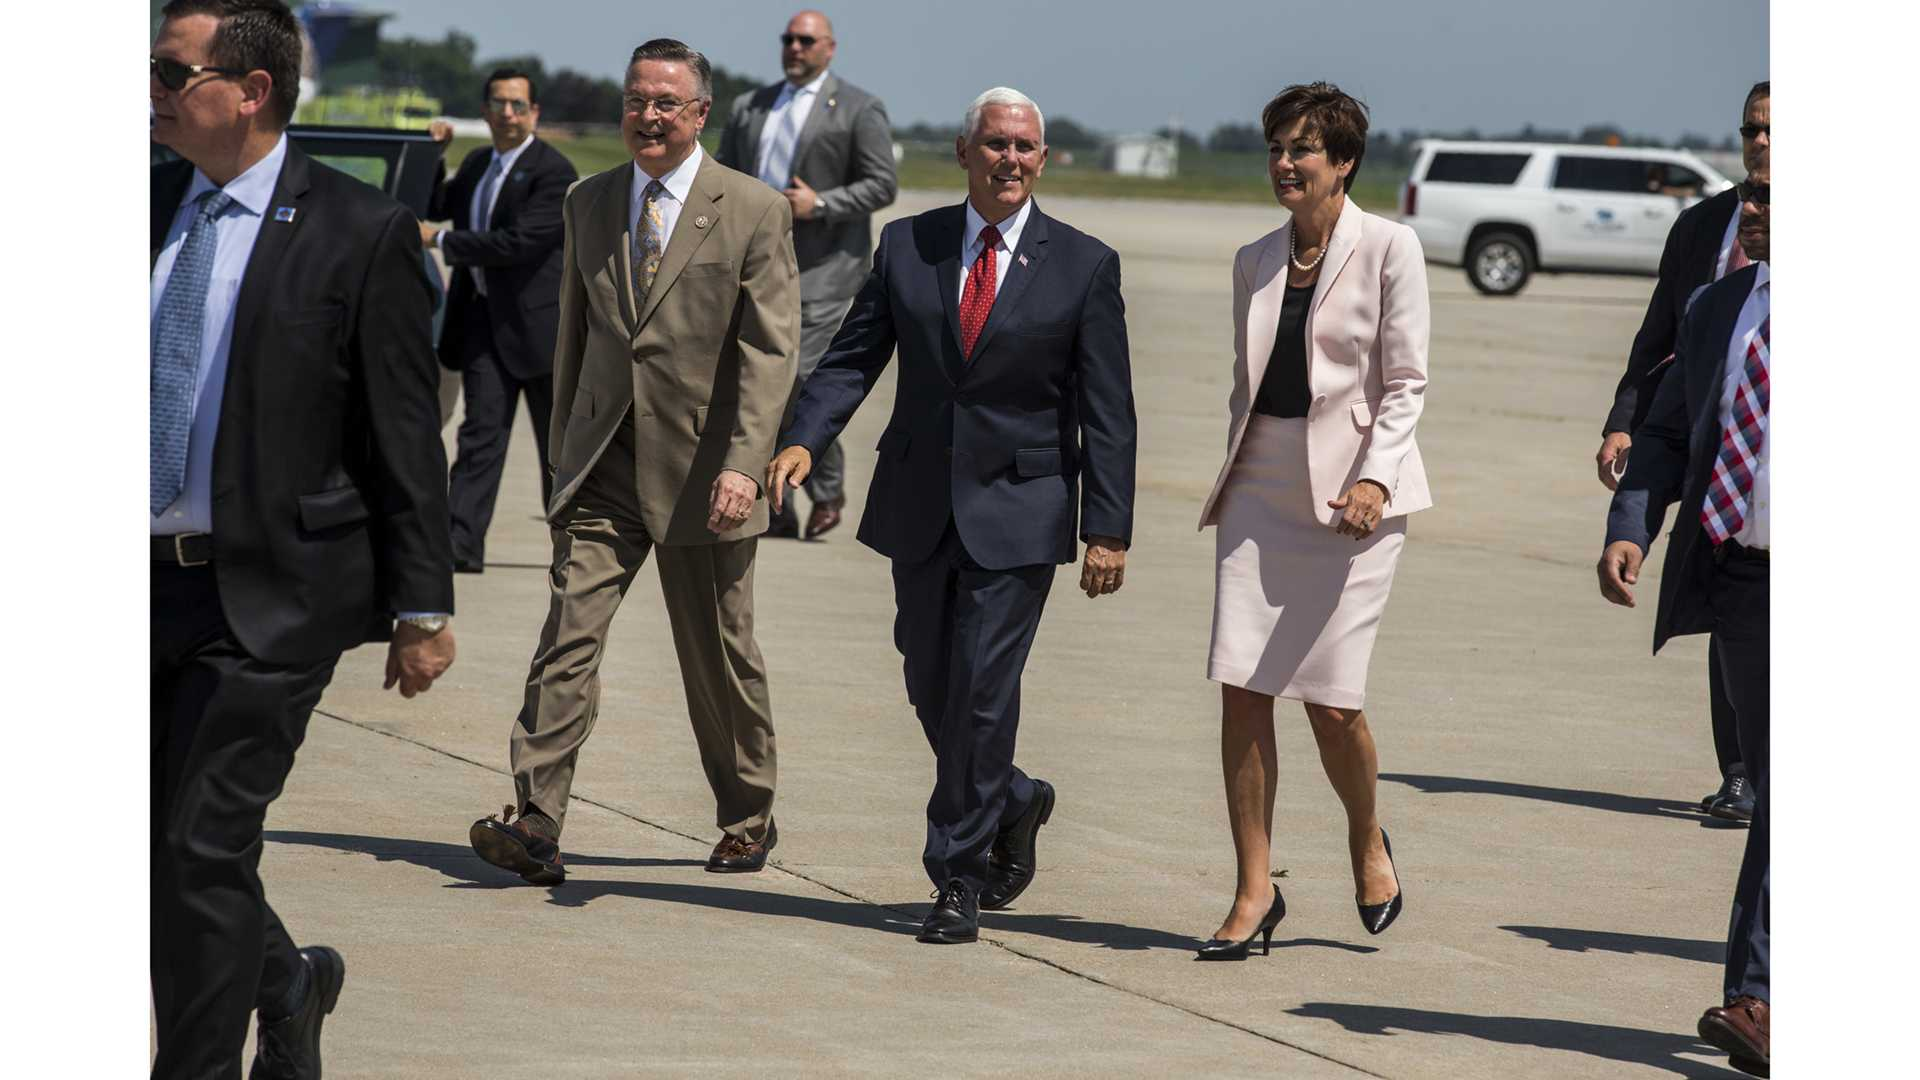 U.S. Representative Rod Blum, Vice President Mike Pence and Iowa Governor Kim Reynolds great supporters at the Eastern Iowa Airport in Cedar Rapids, IA on Wednesday, July 11, 2018. (Nick Rohlman/The Daily Iowan)